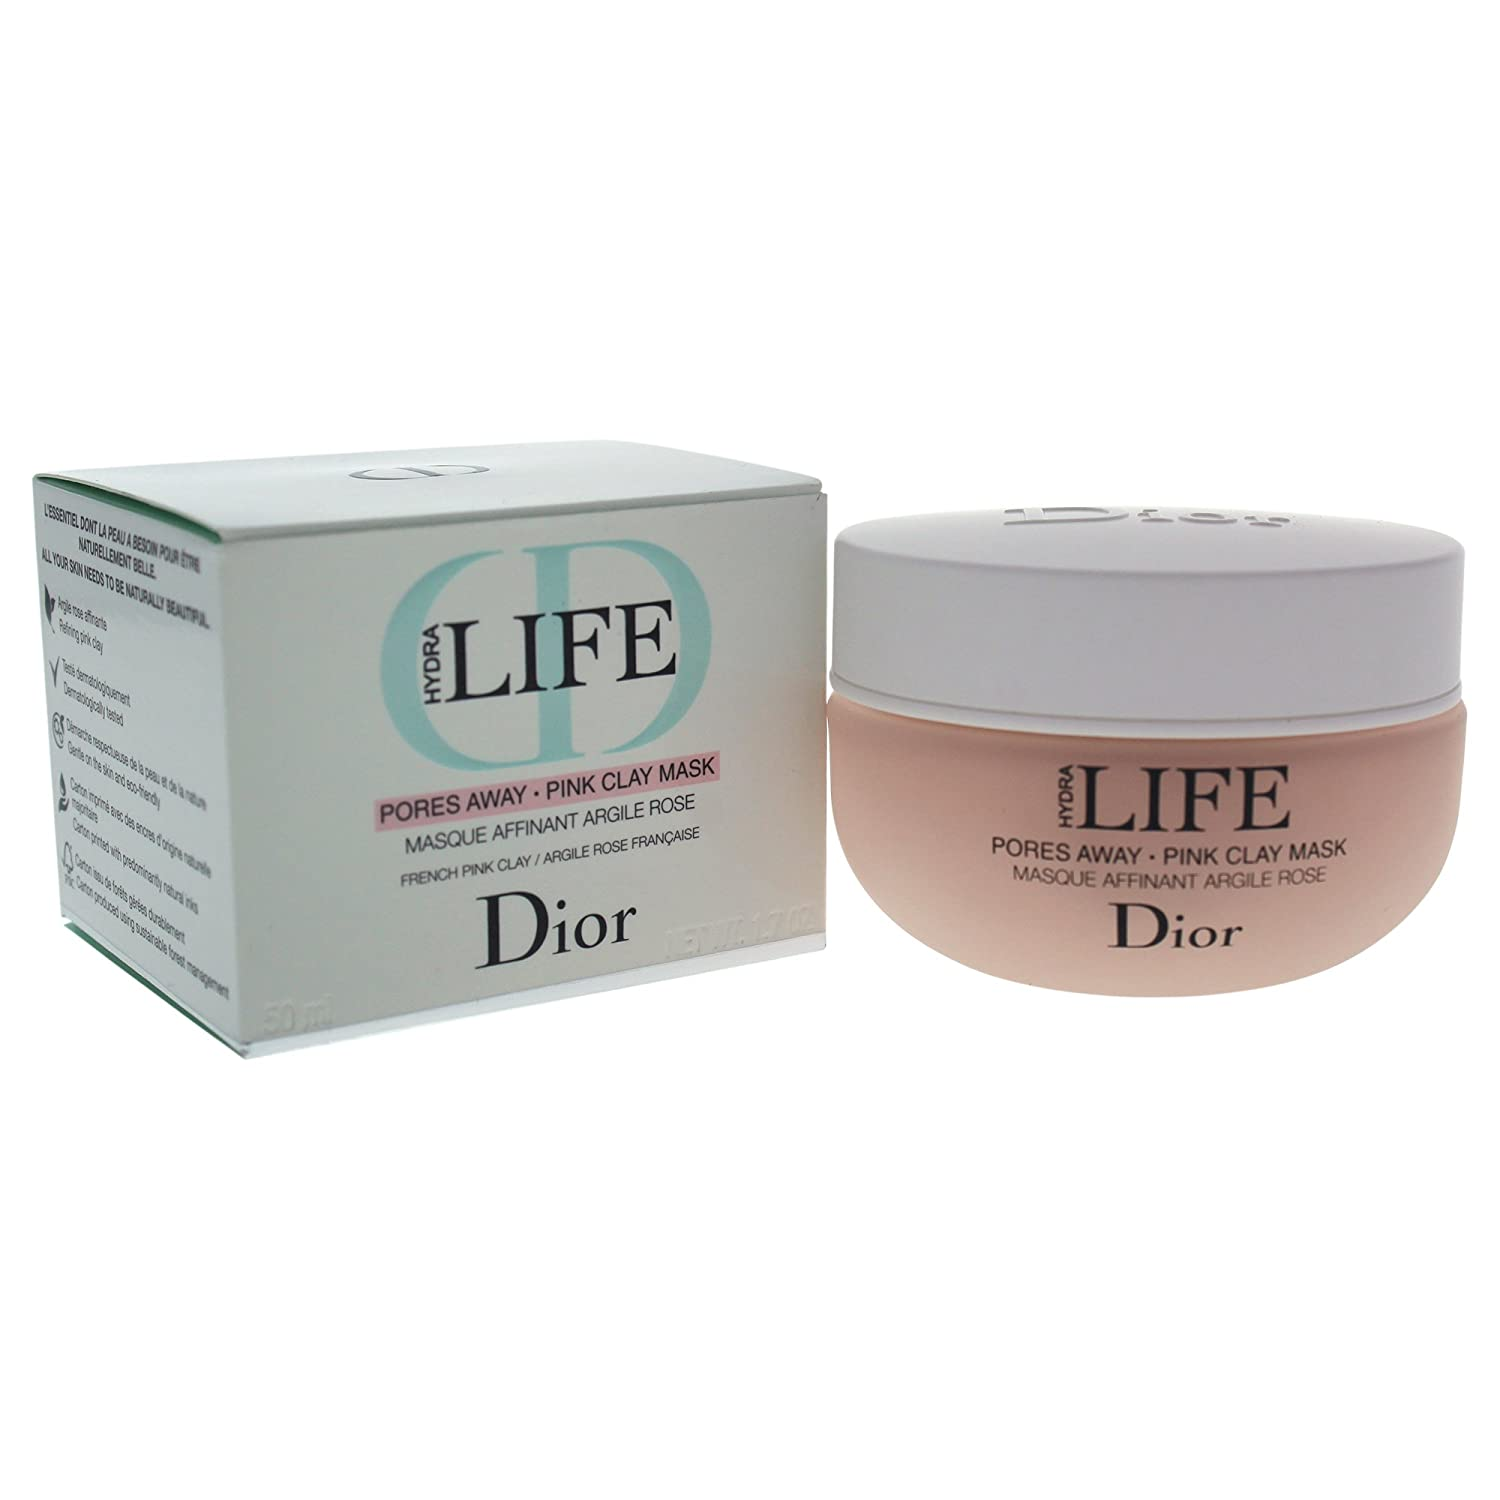 Dior Hlife Masque Affinant - 50 ml Facial Masks